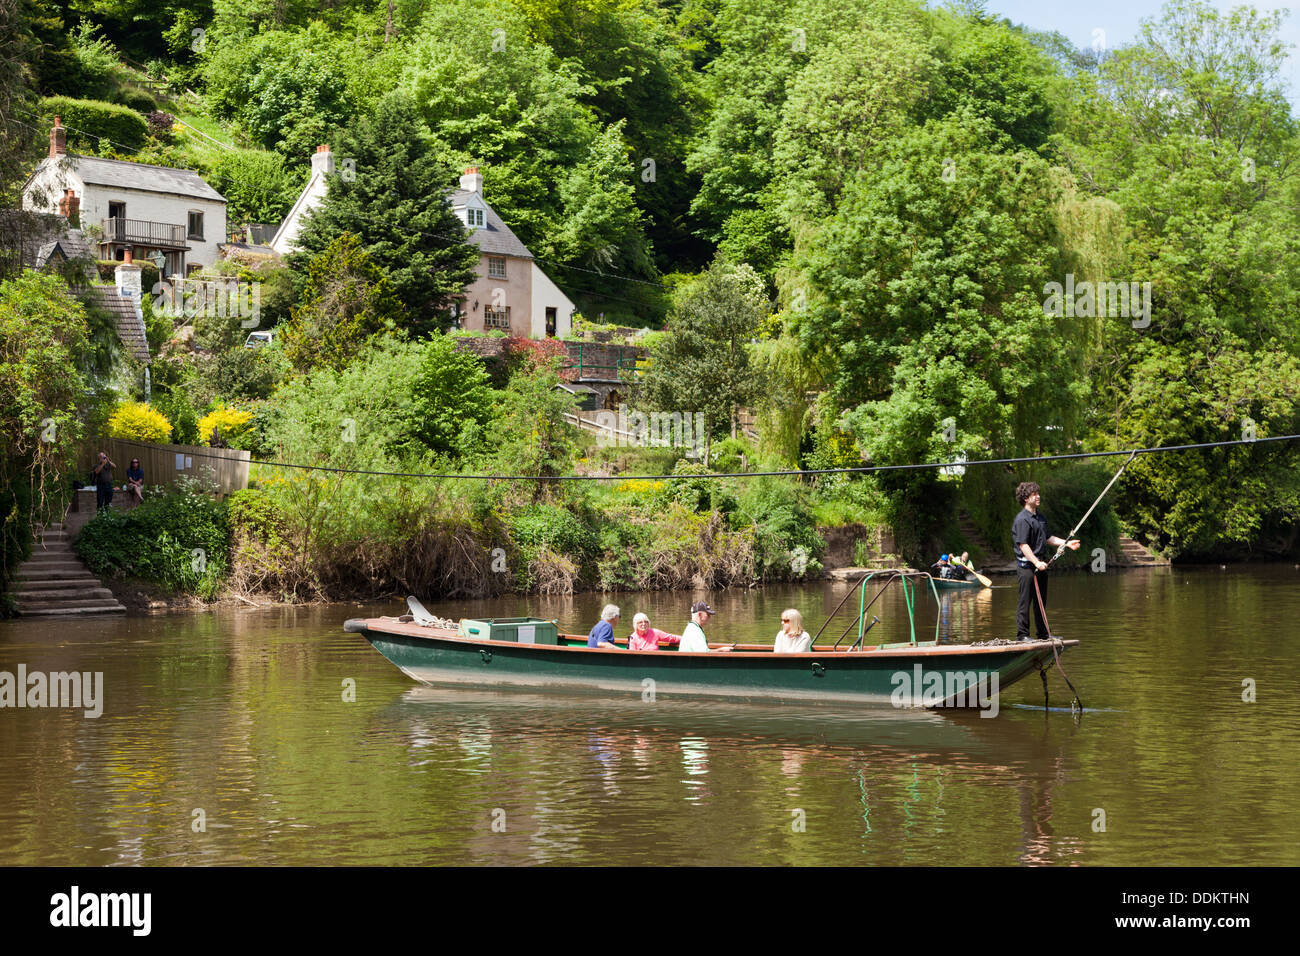 The hand-pulled cable ferry across the River Wye at Symonds Yat, Herefordshire UK - Stock Image